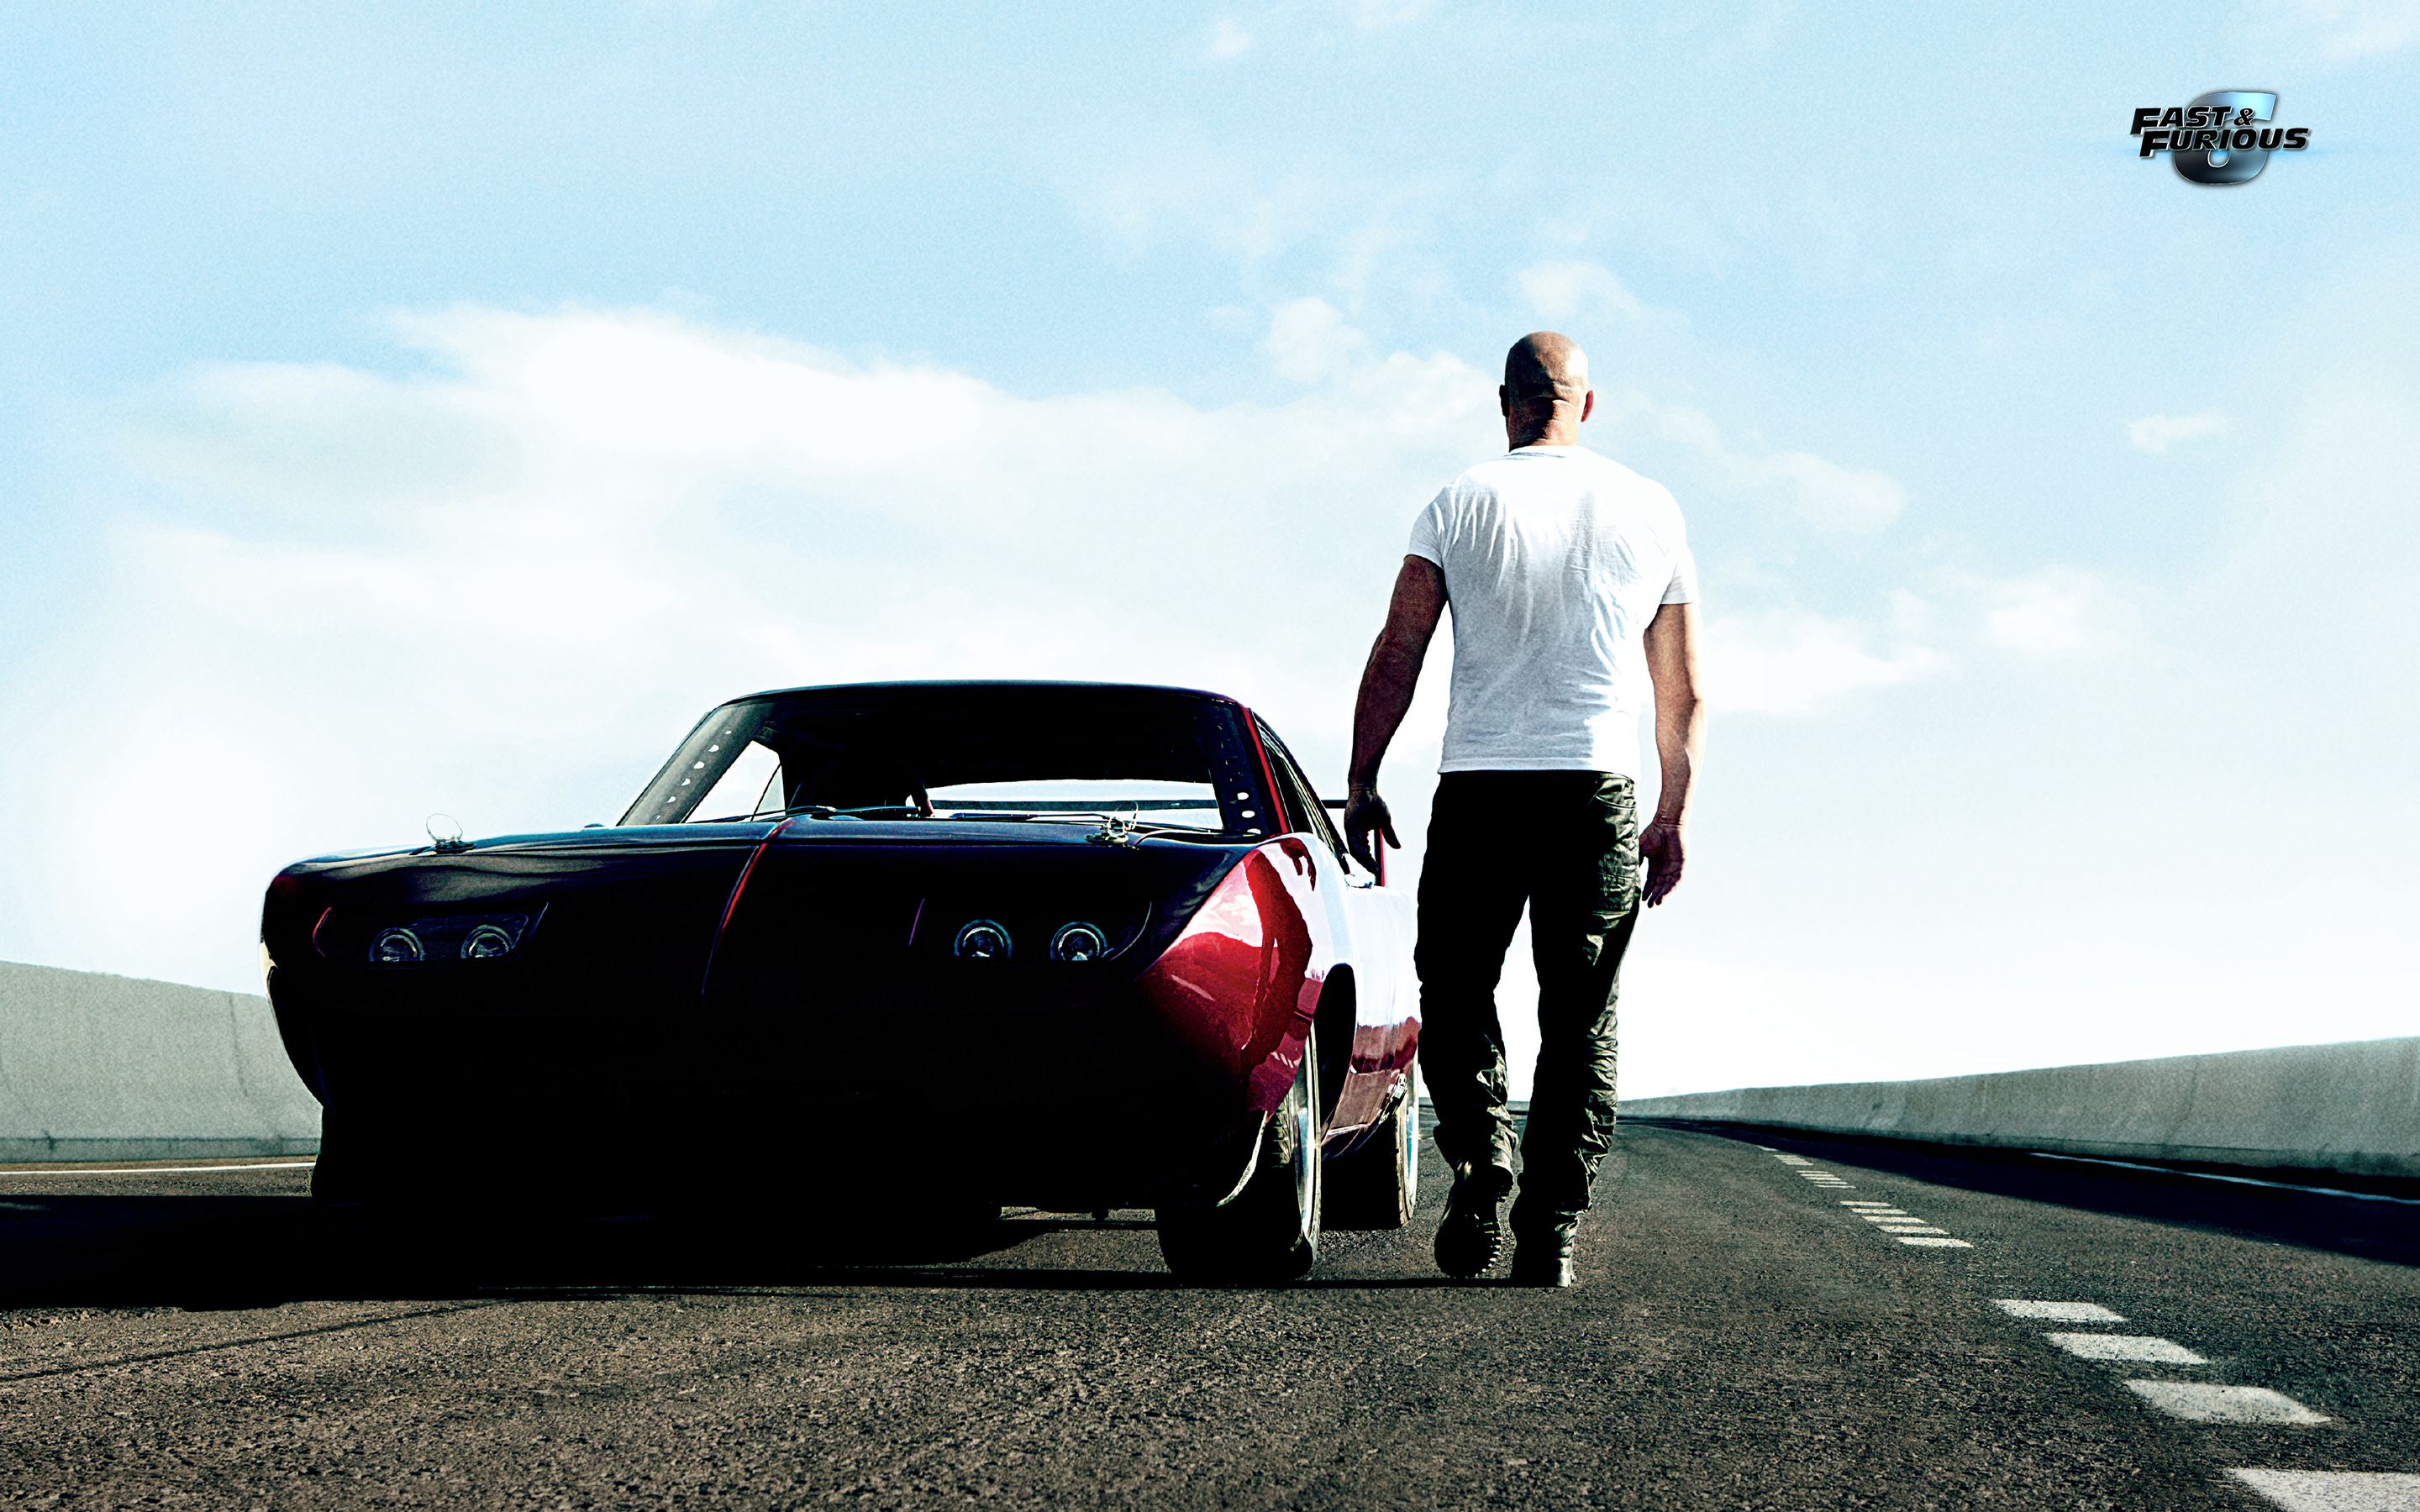 Vin Diesel Muscle Car Fast and Furious 6 HD Wallpaper 4371 2880x1800